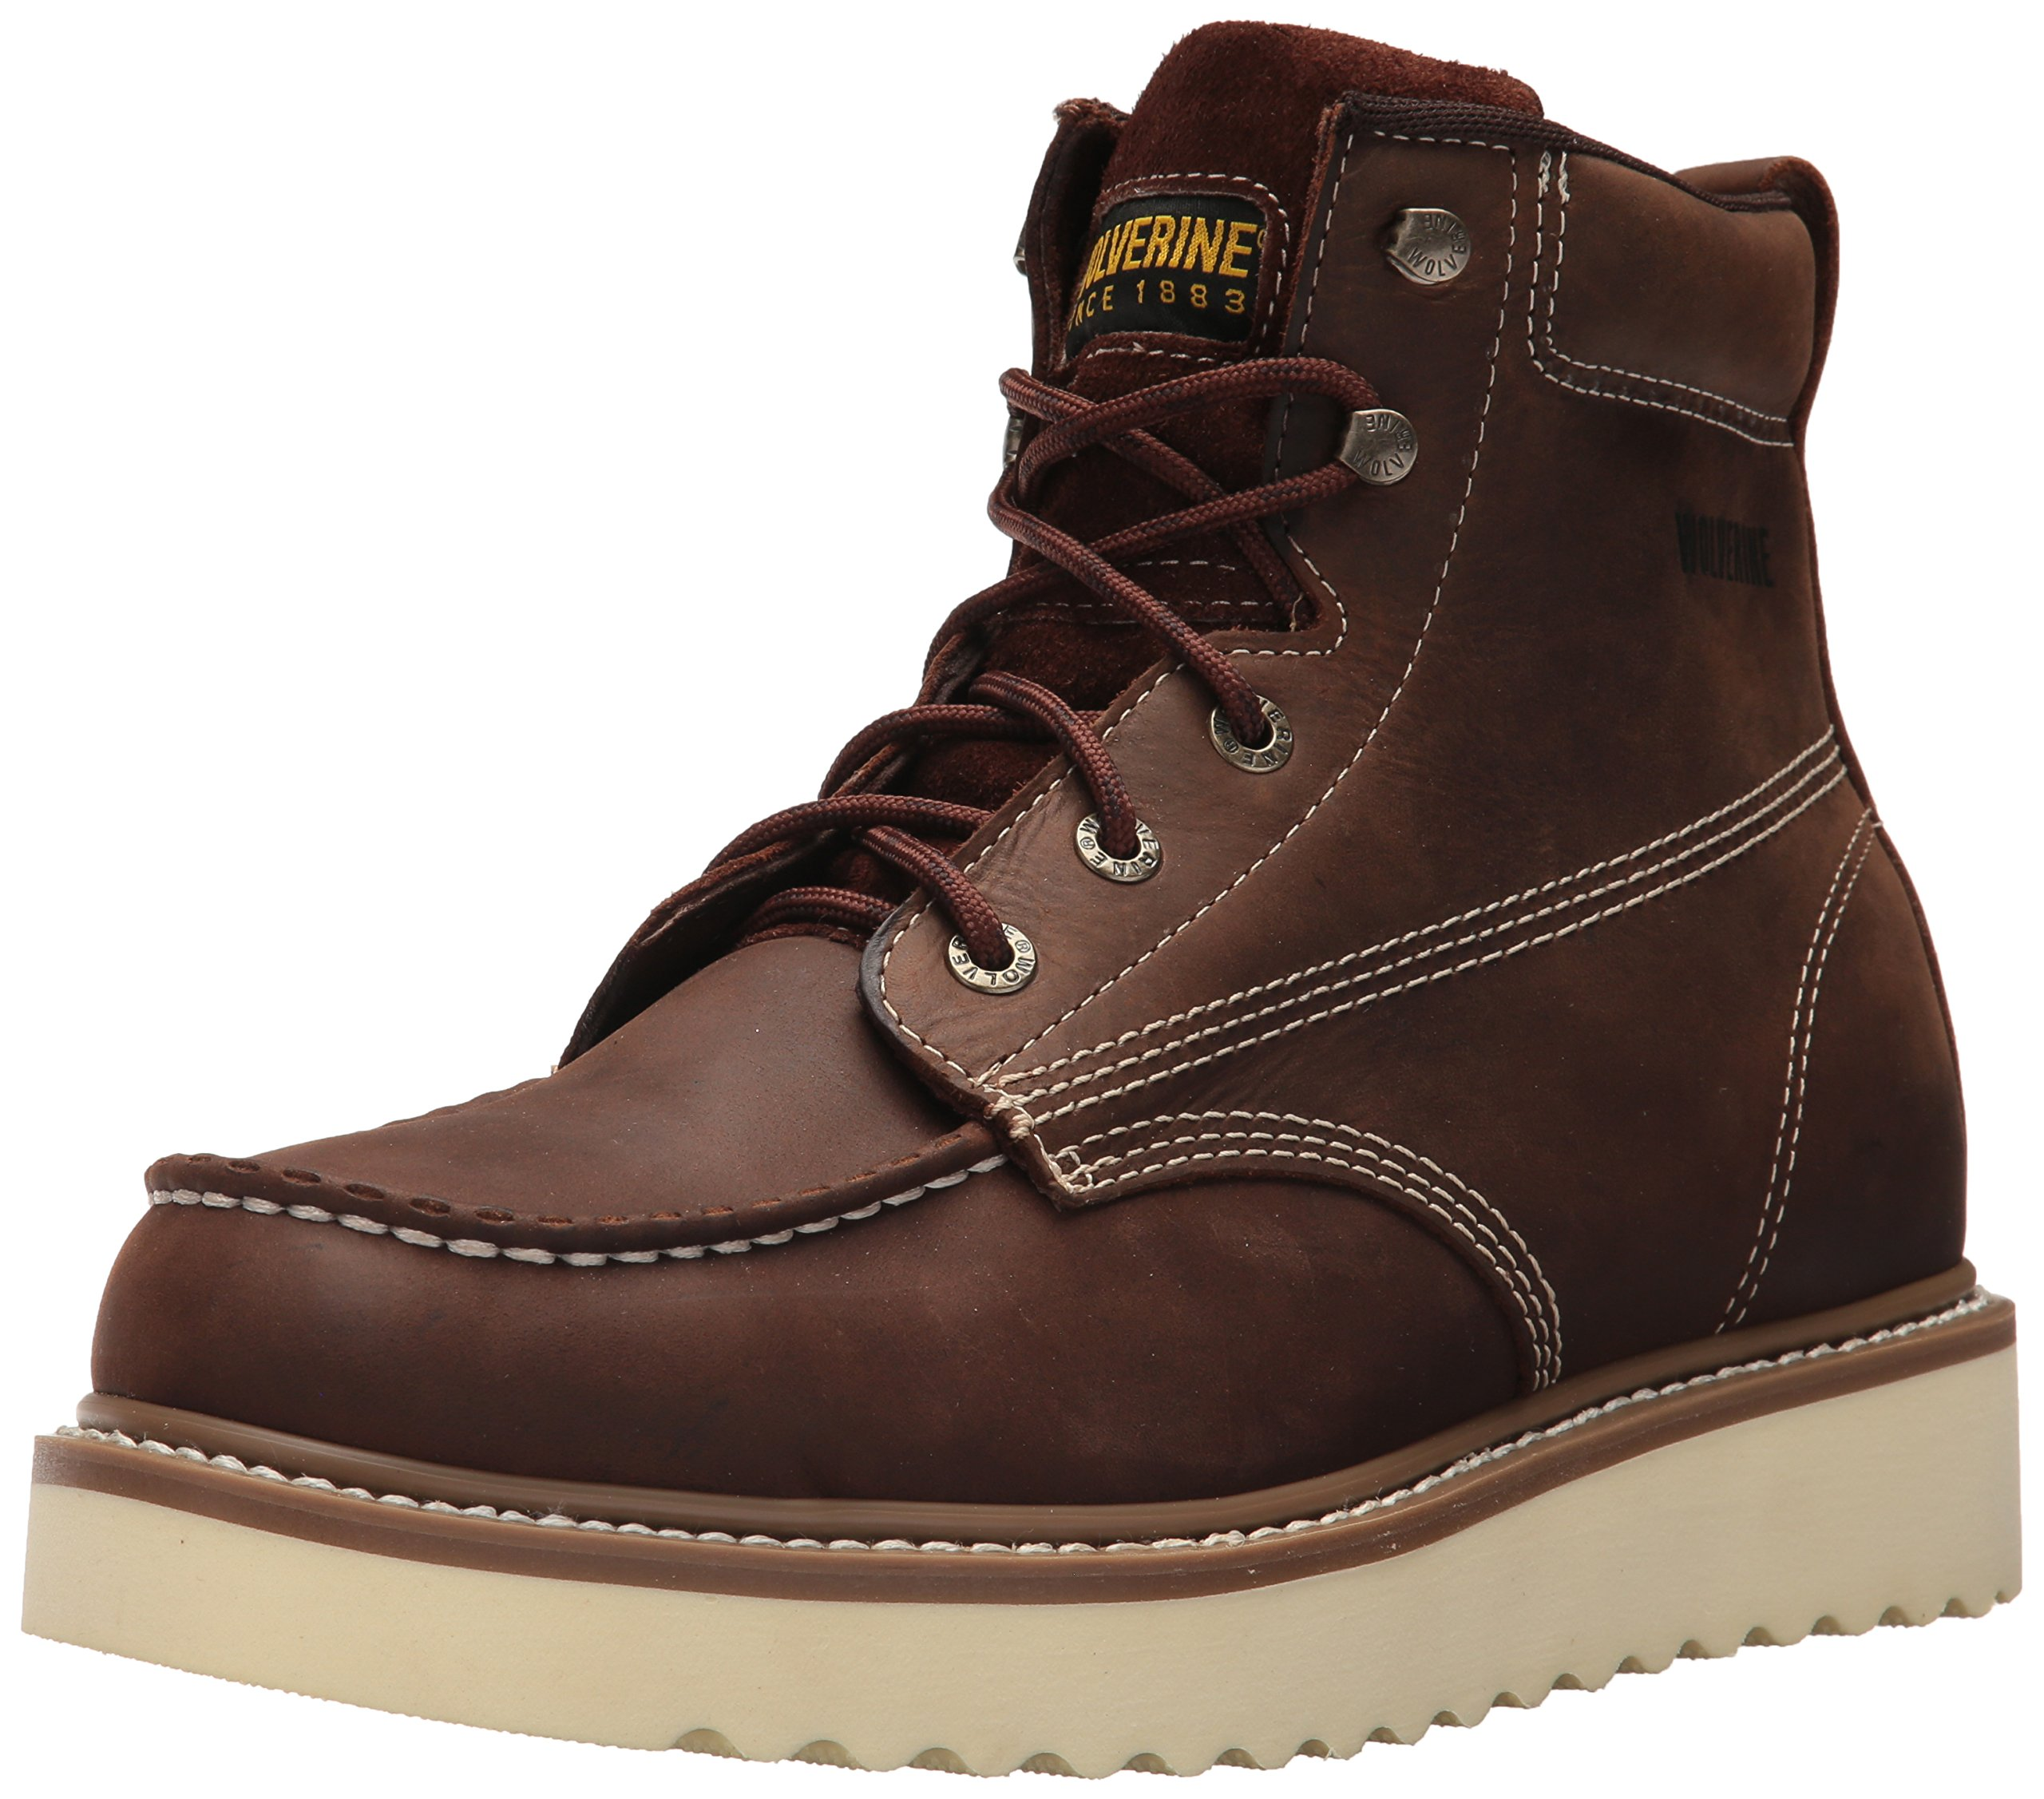 Wolverine Men's Loader 6'' Soft Toe Wedge Work Boot, Brown, 10.5 M US